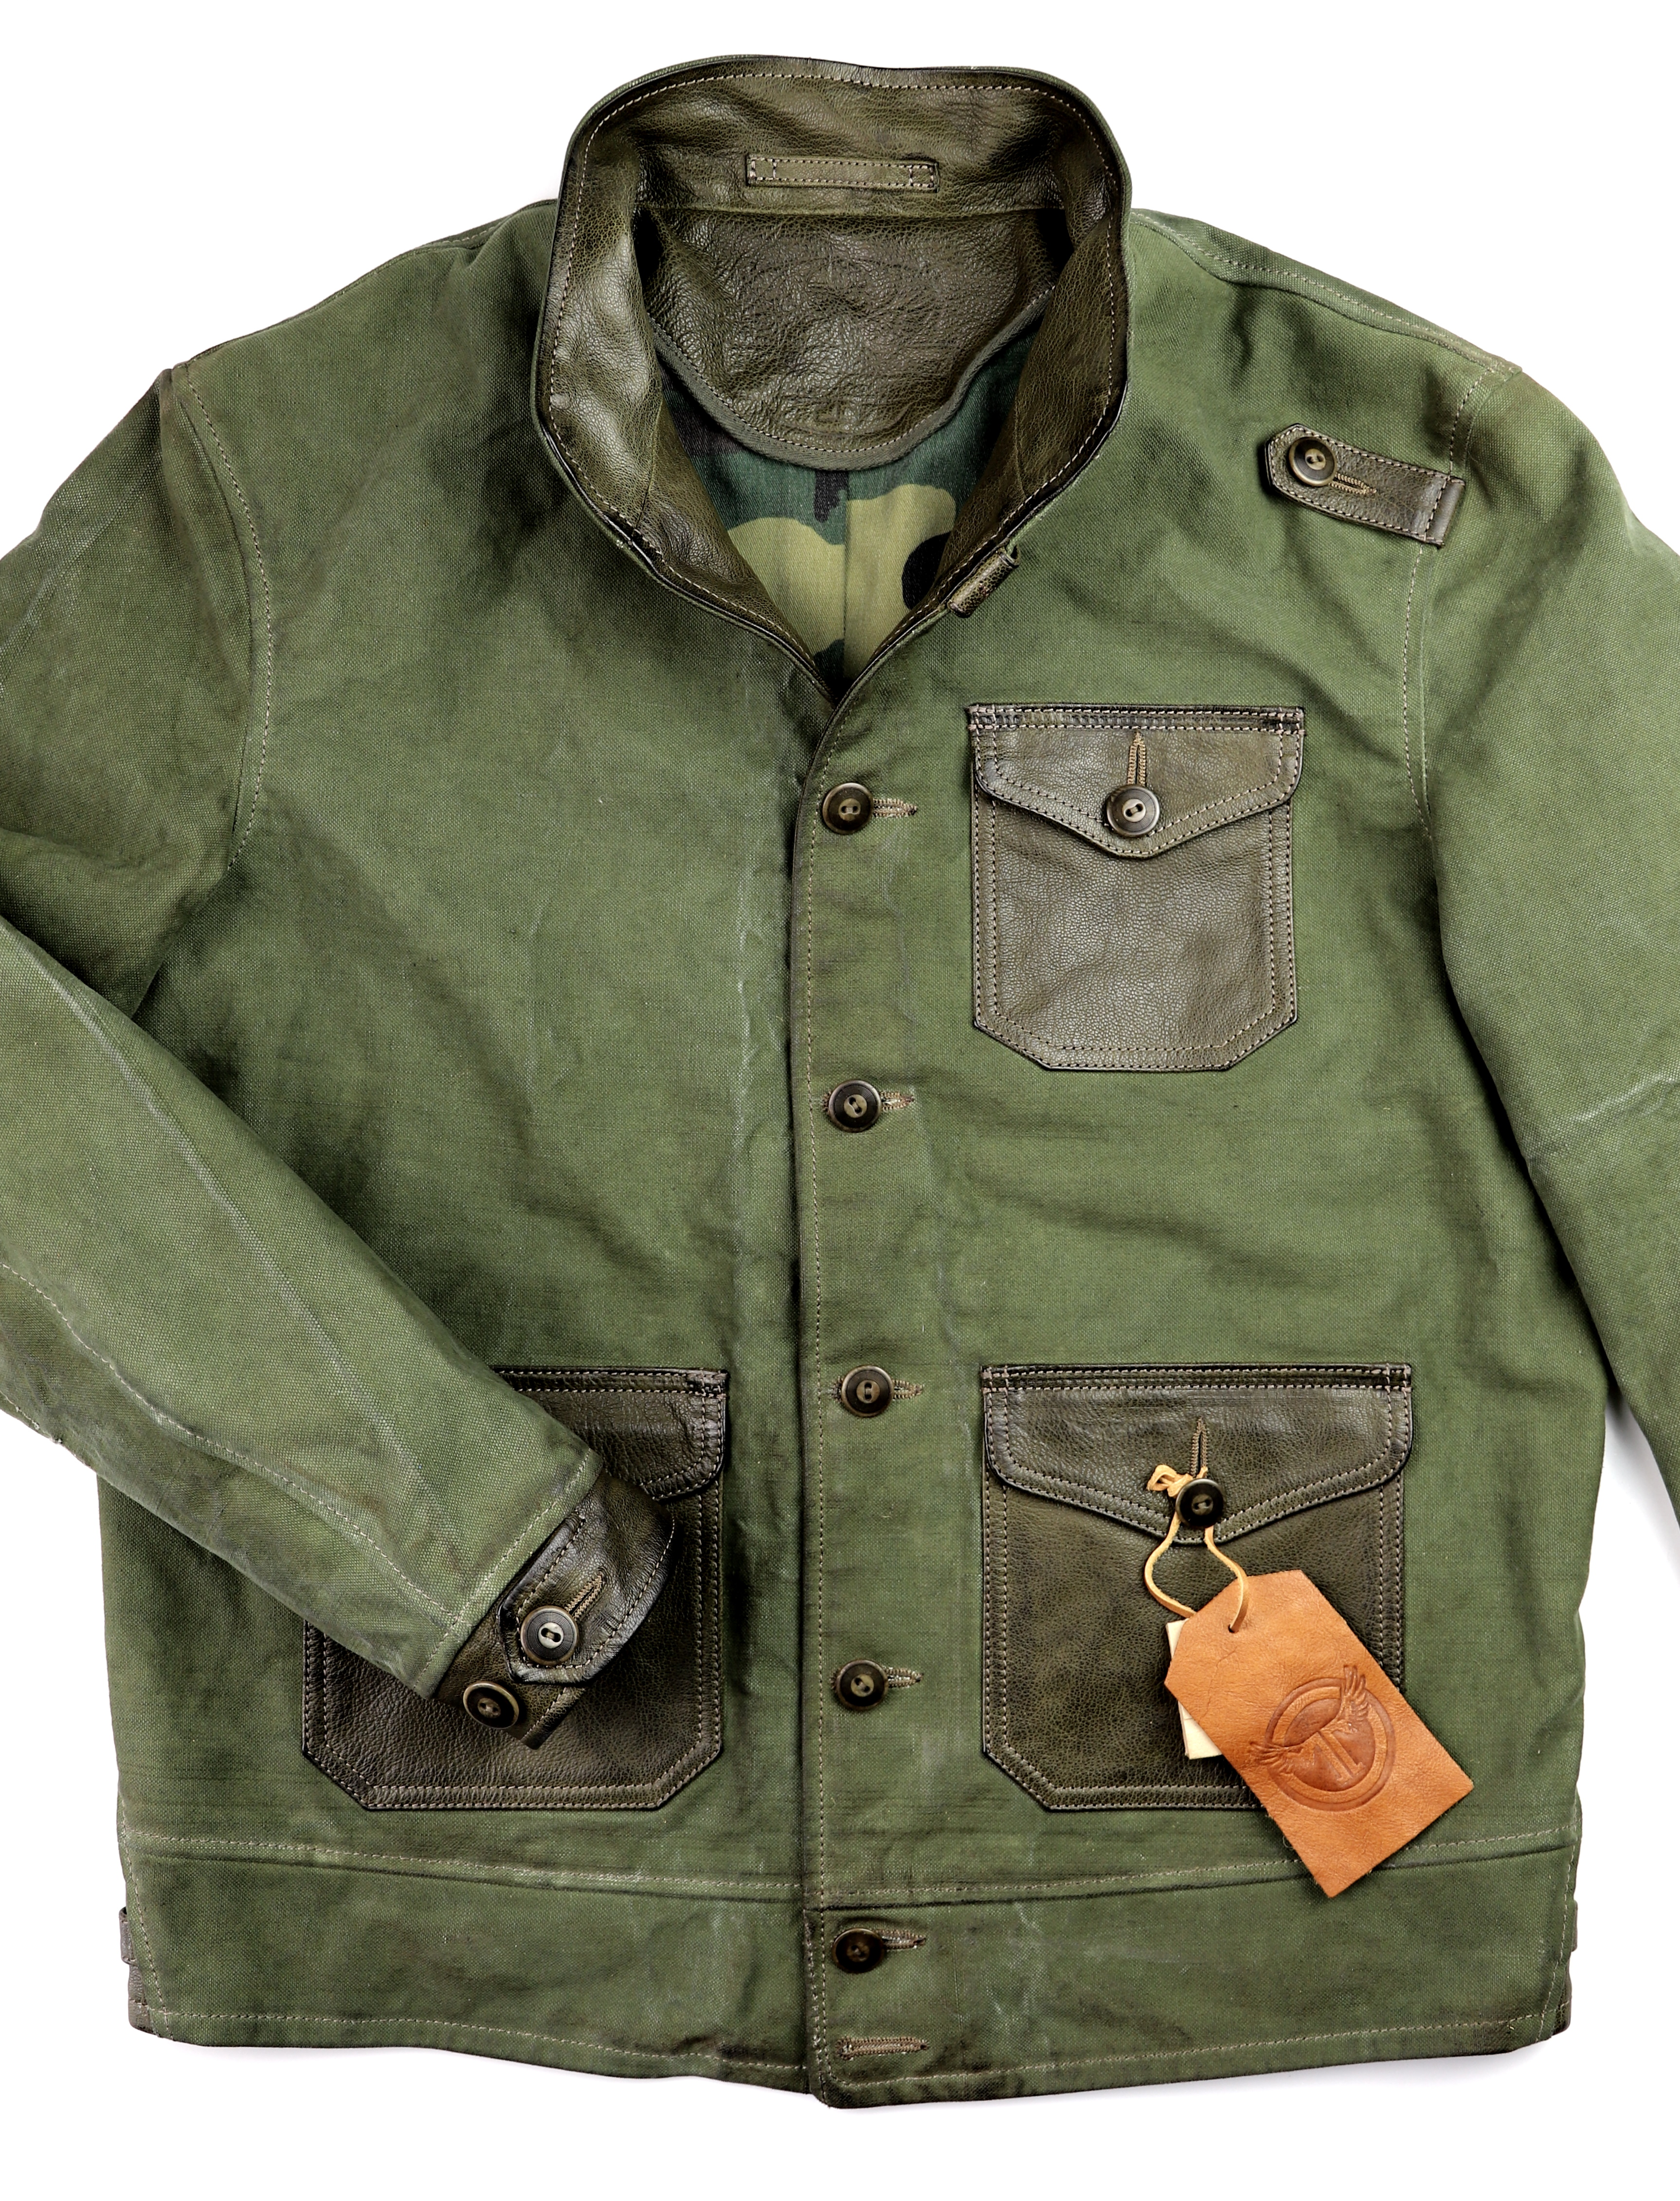 Thedi Canvas and Green Goatskin Button-Up front.jpg